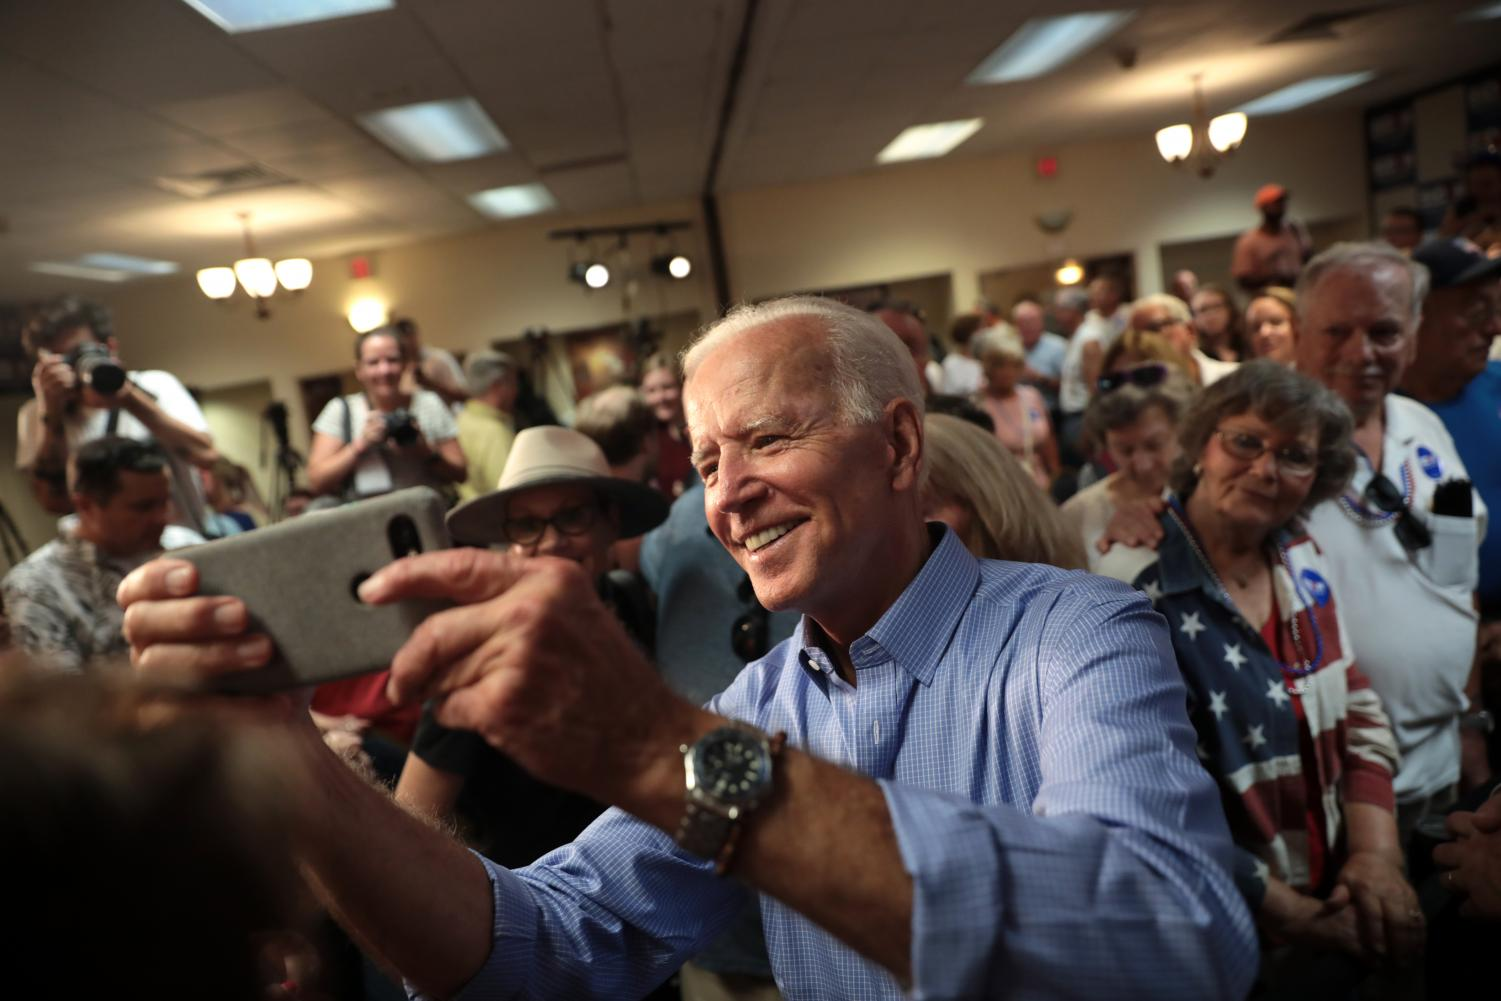 Democratic presidential candidate Joe Biden meets with his supporters at a campaign rally.